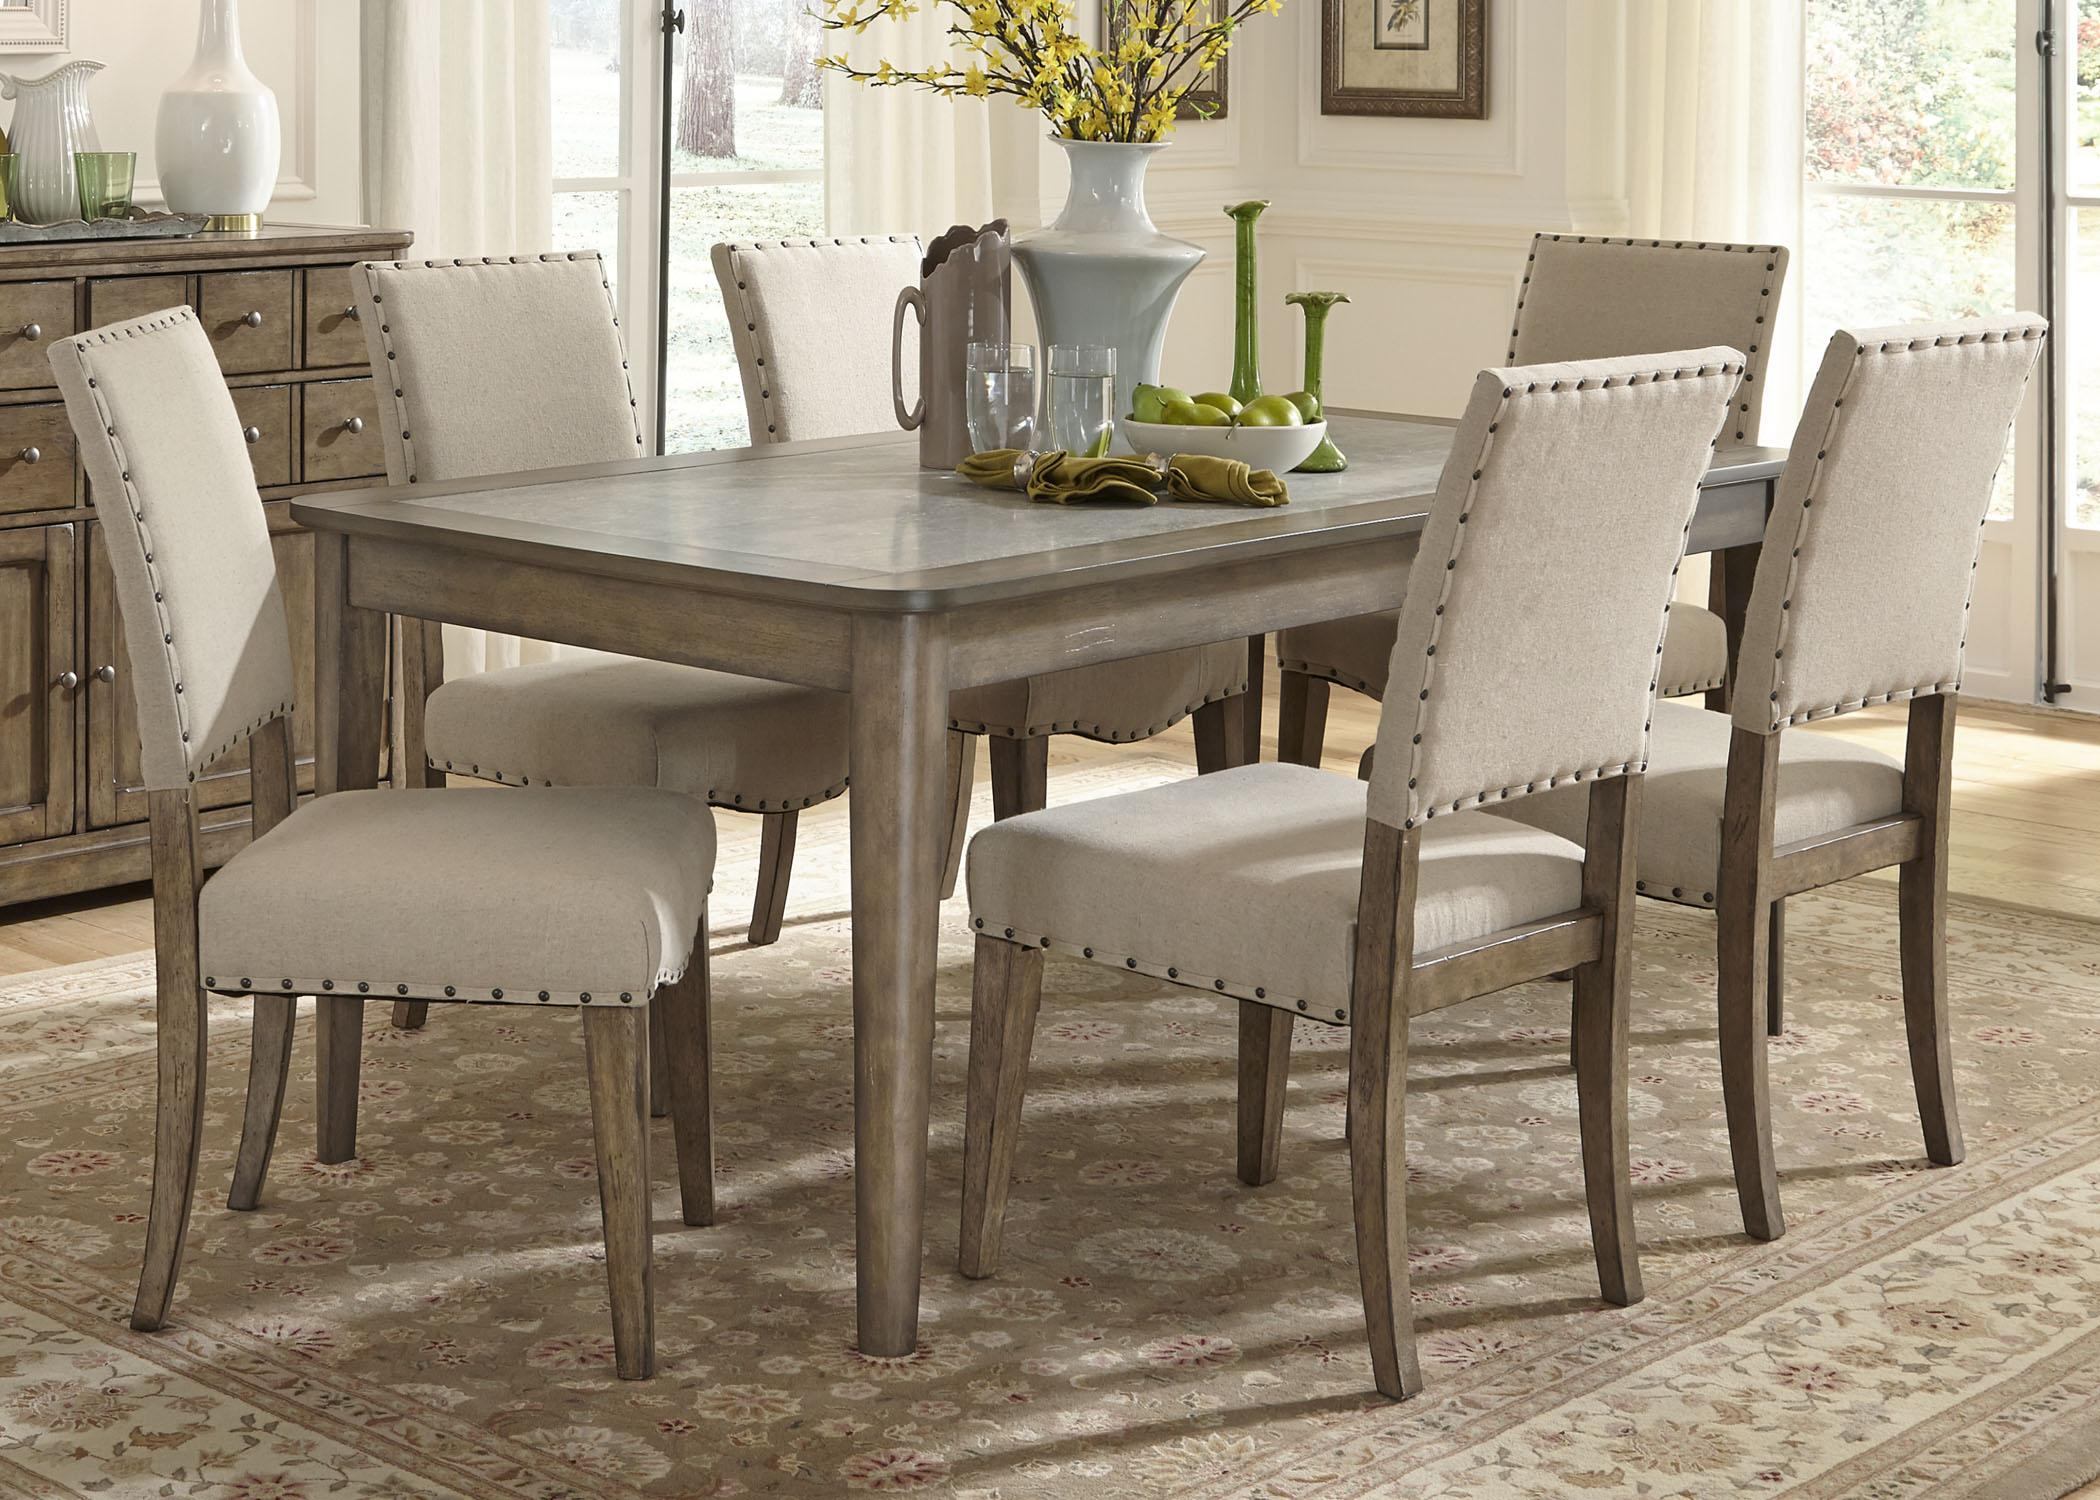 Casual Rustic 7 Piece Dining Table and Chairs Set by  : products2Flibertyfurniture2Fcolor2Fweatherford20645645 t38722B6xc6501s b0 from www.wolffurniture.com size 2100 x 1500 jpeg 419kB